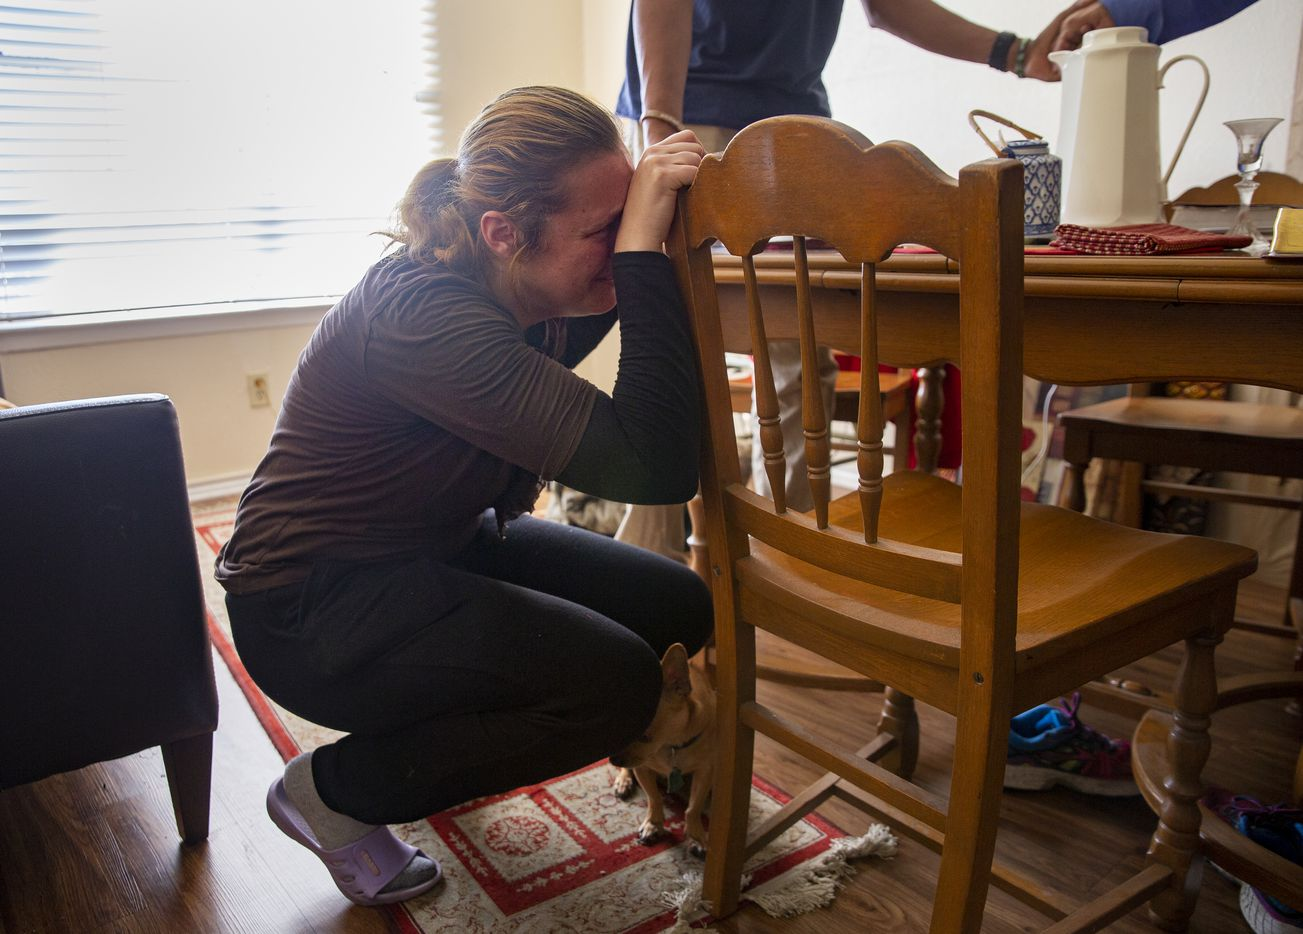 Cindy (last name withheld) breaks down as Jennifer and Leon Birdd pray over her and her home the first Sunday after the Birdds lost the S.O.U.L. Church lot in Dallas.